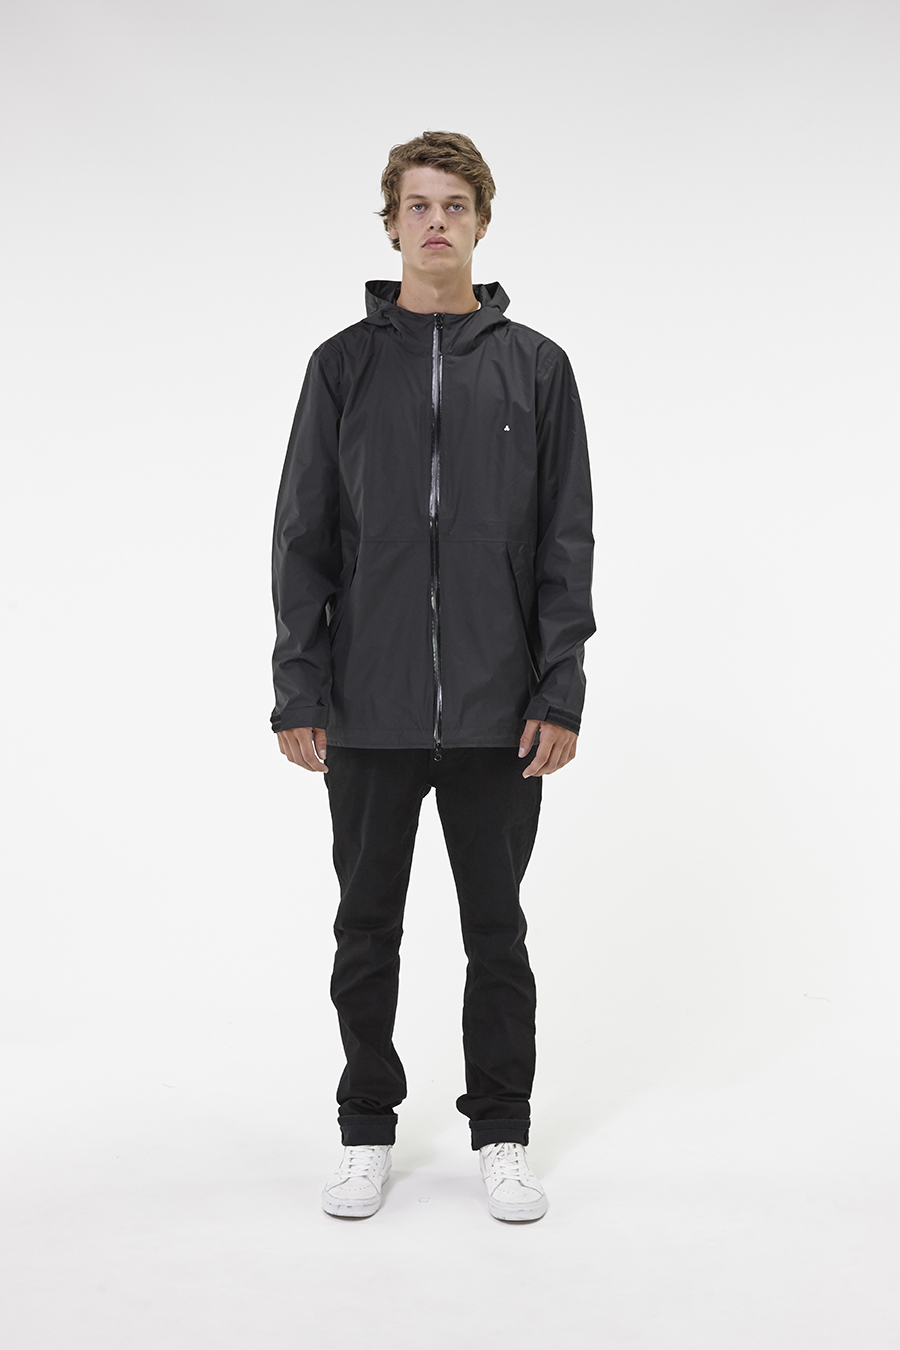 Huffer_Q3-16_M-Alpine-Jacket_Black-01